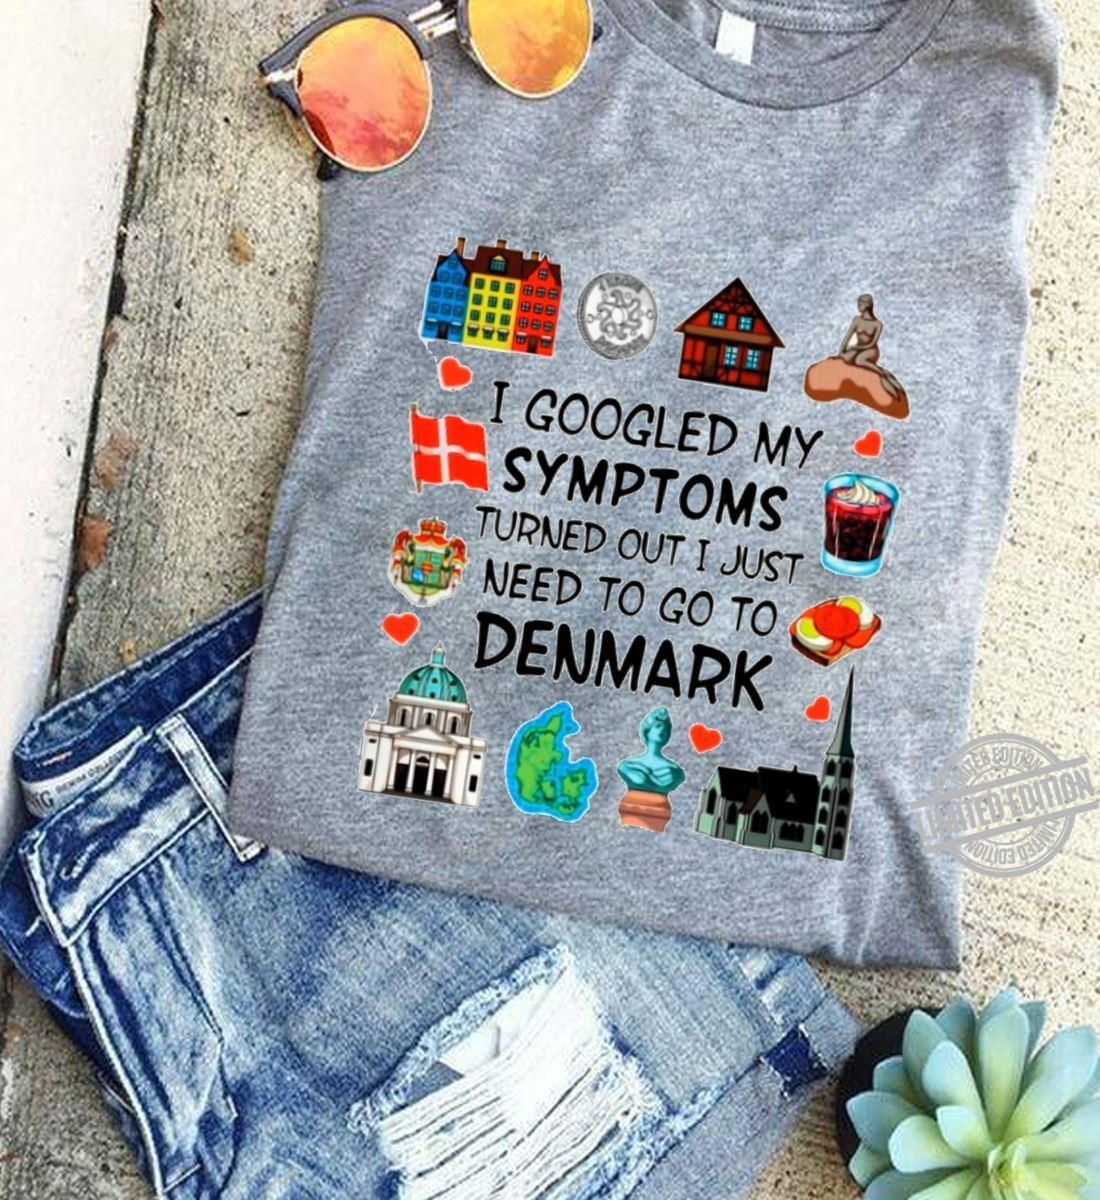 I Googled My Symptoms Turned Out I Just Need To Go To Denmark Shirt